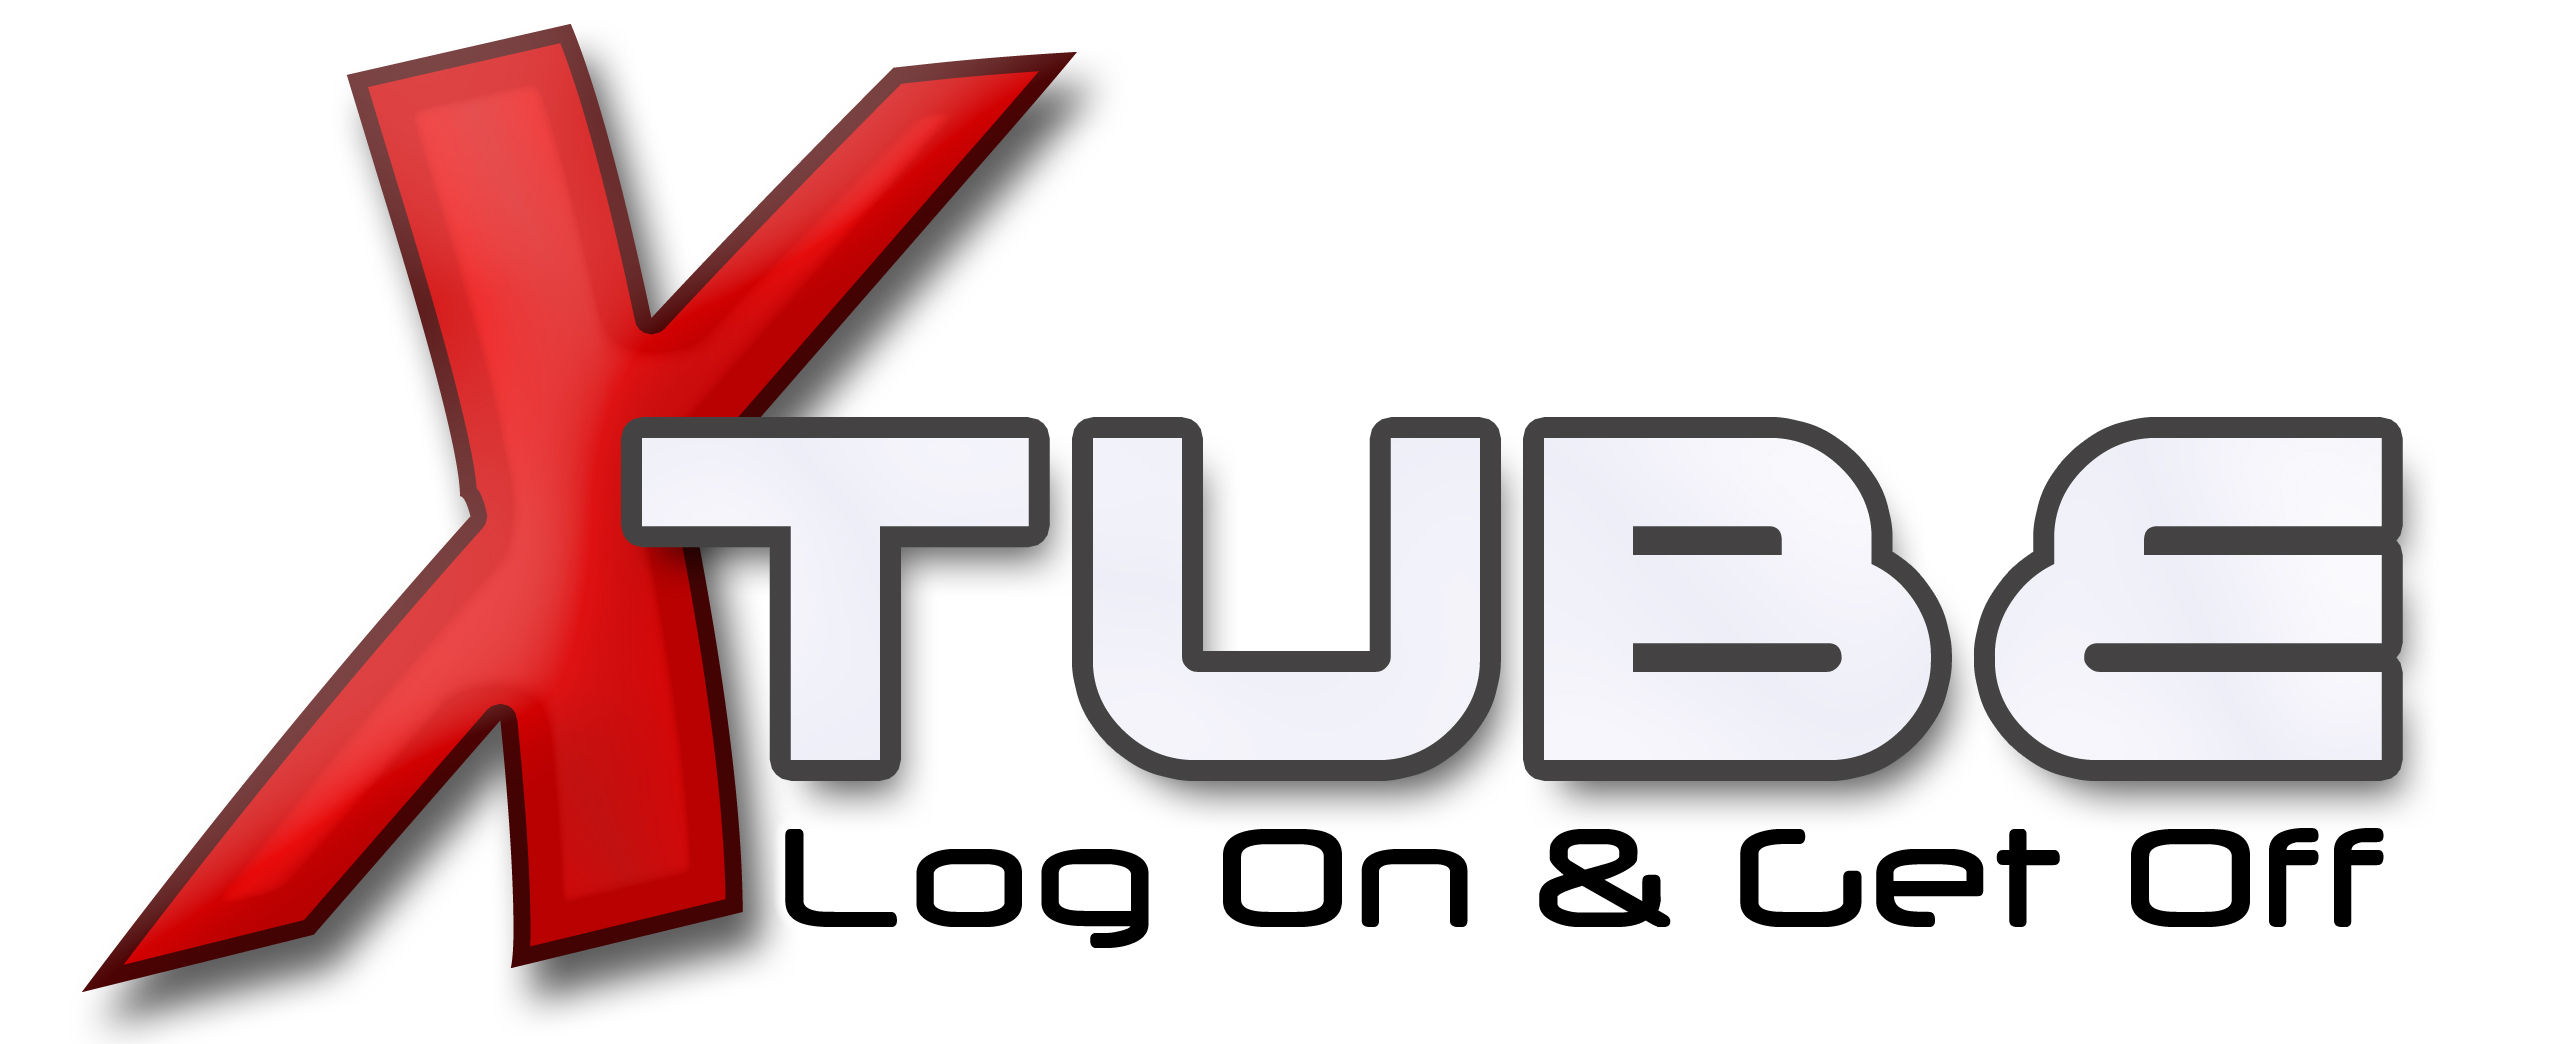 Xtube subscriptions